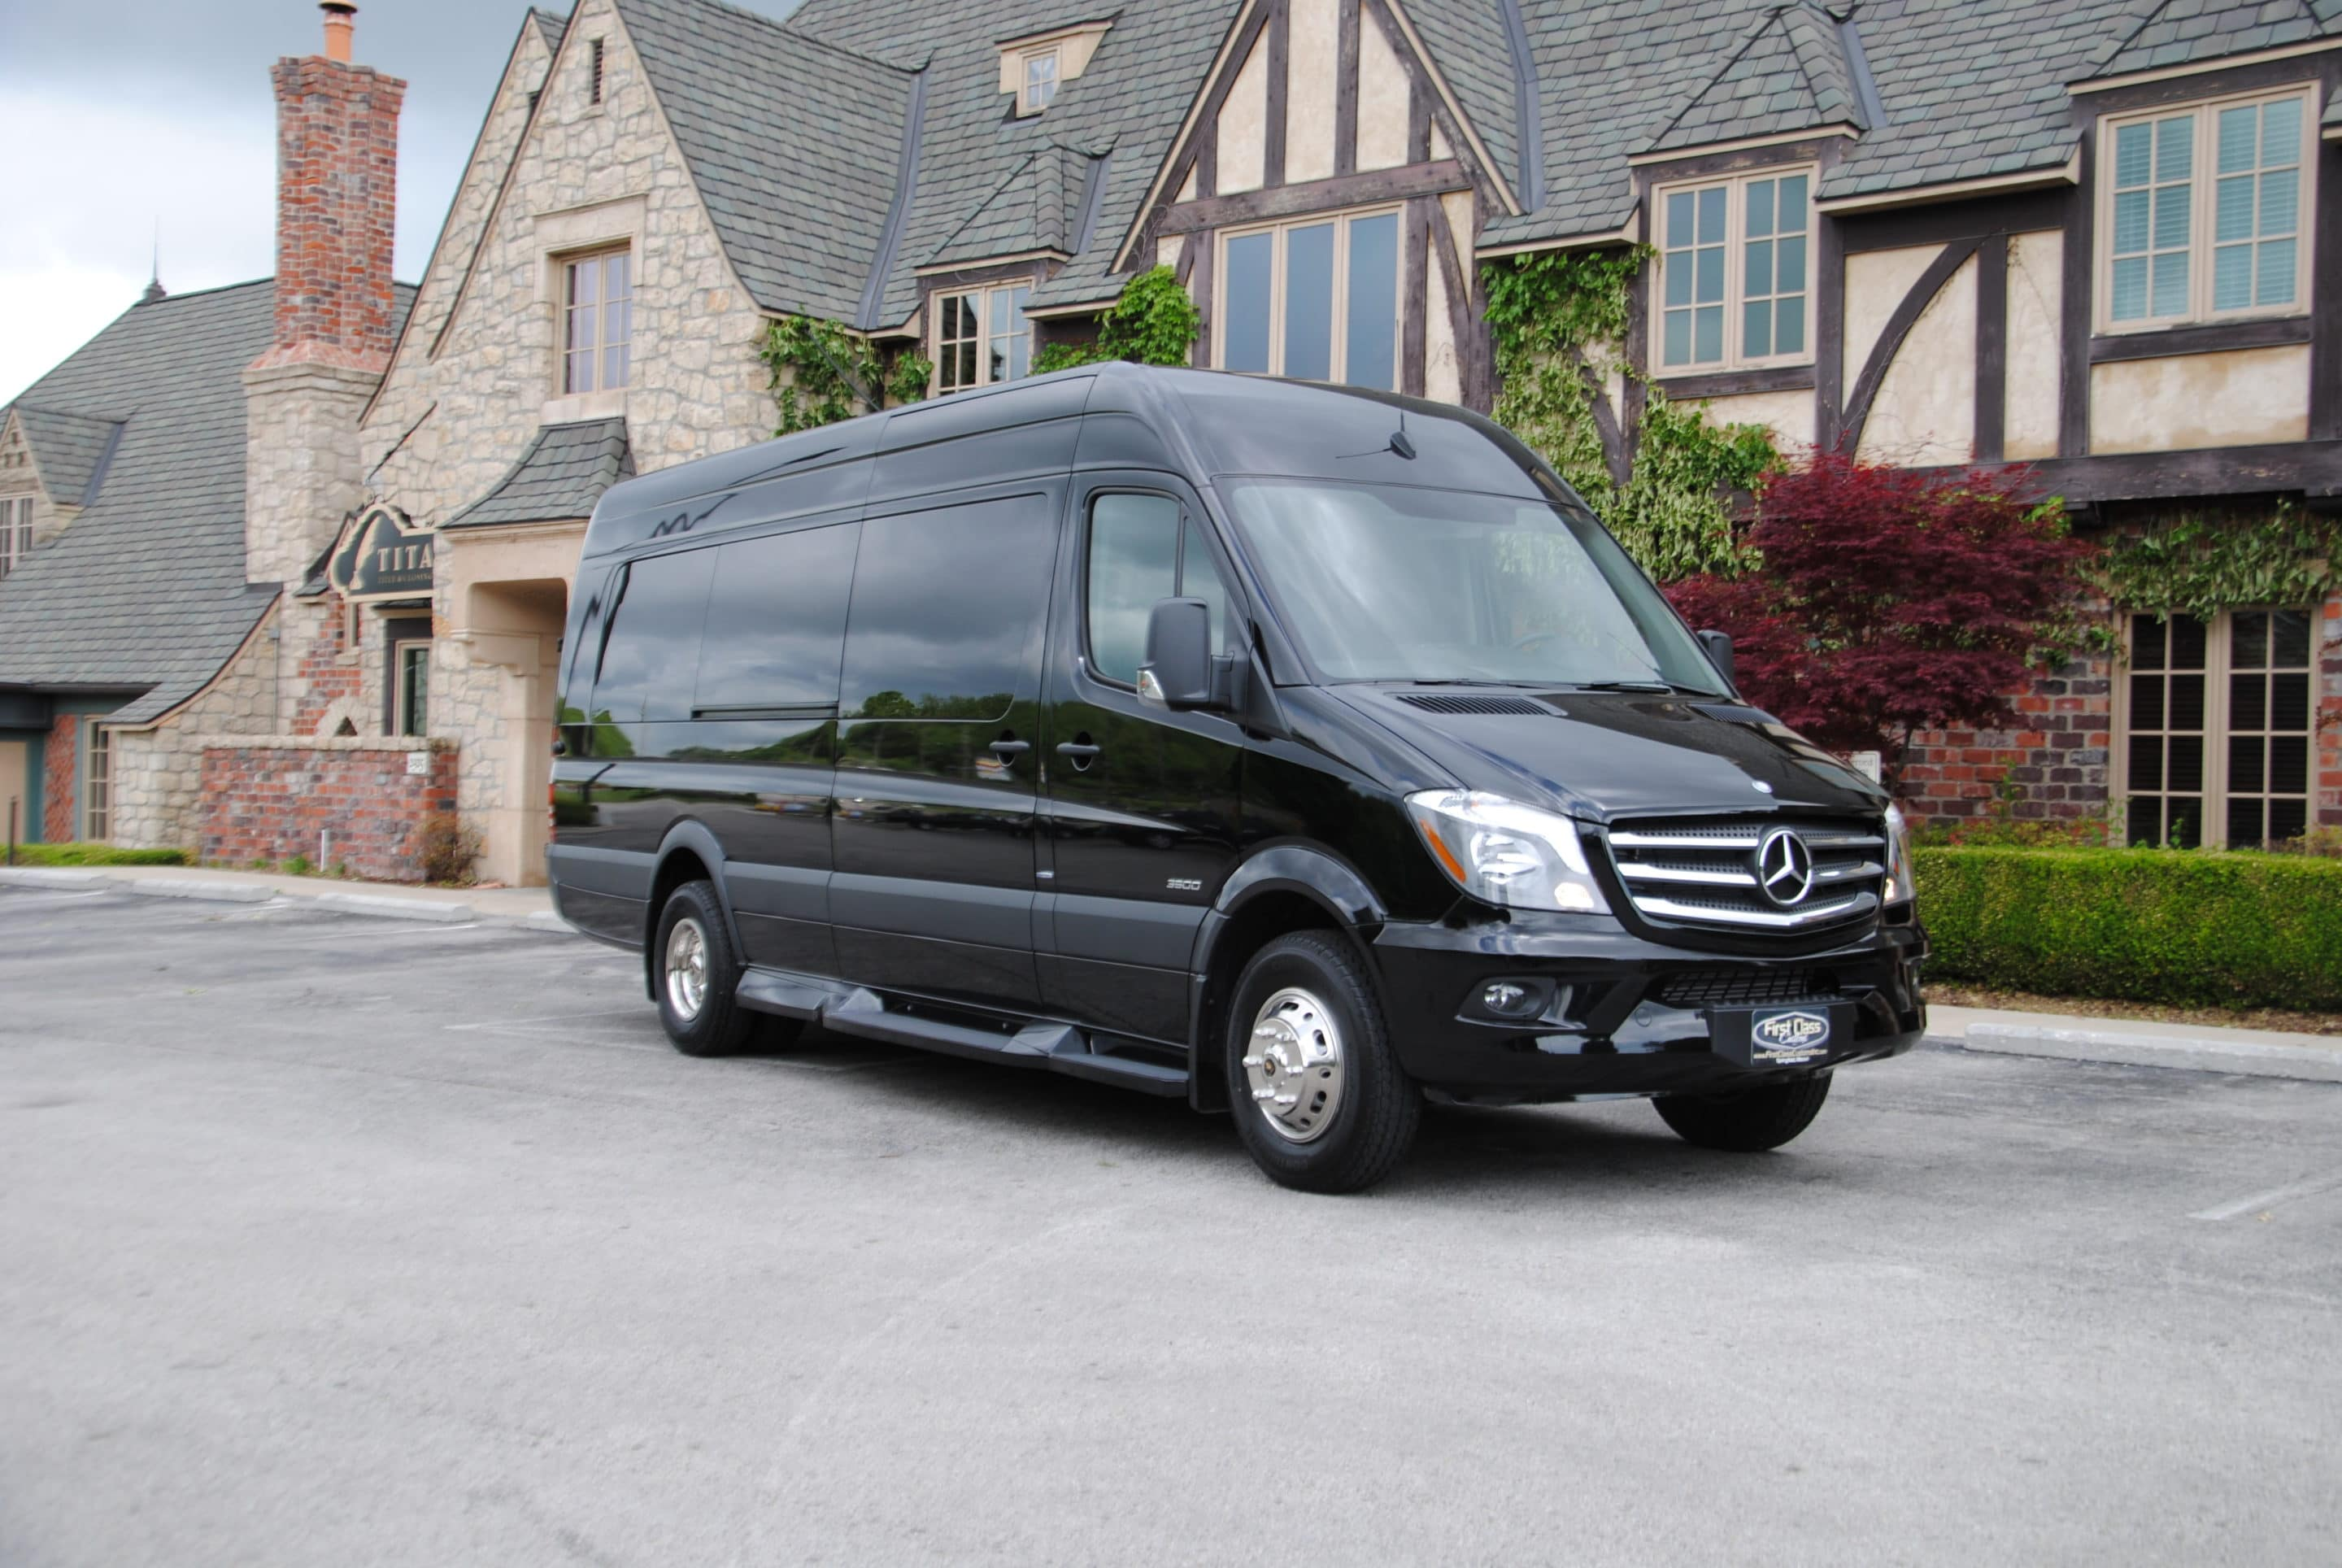 Luxury Sprinter Van car service